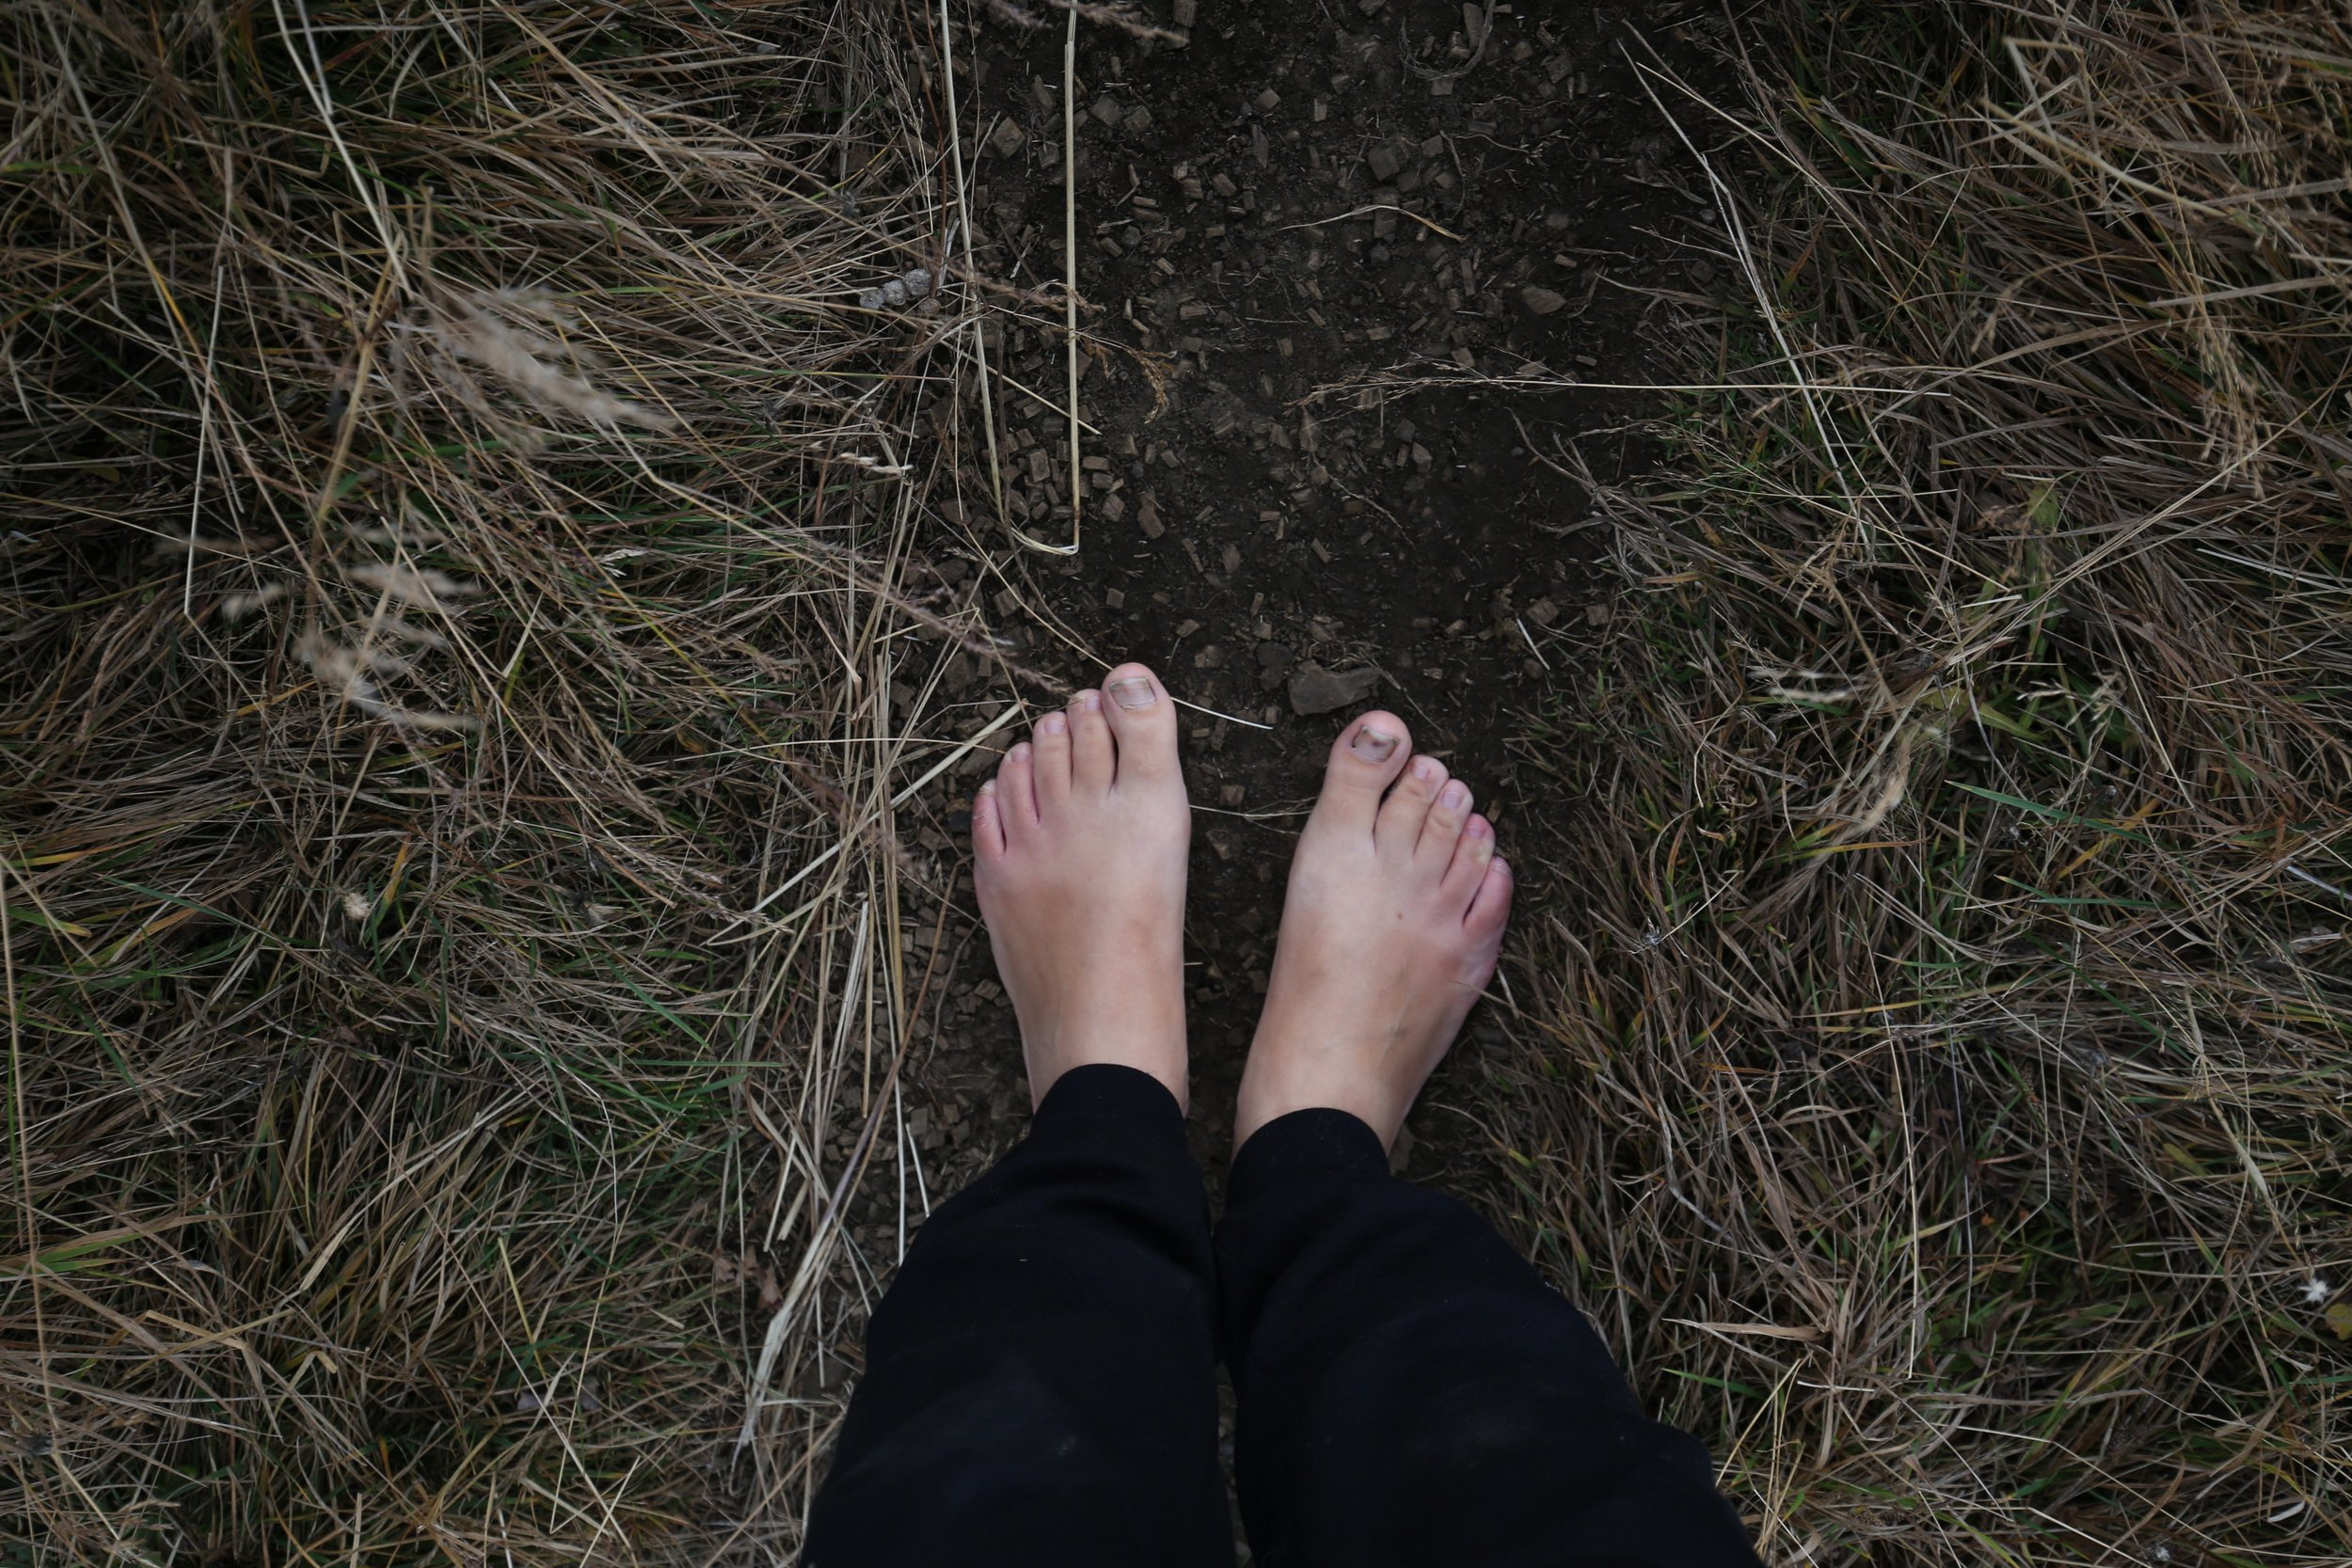 grounding earthing feet